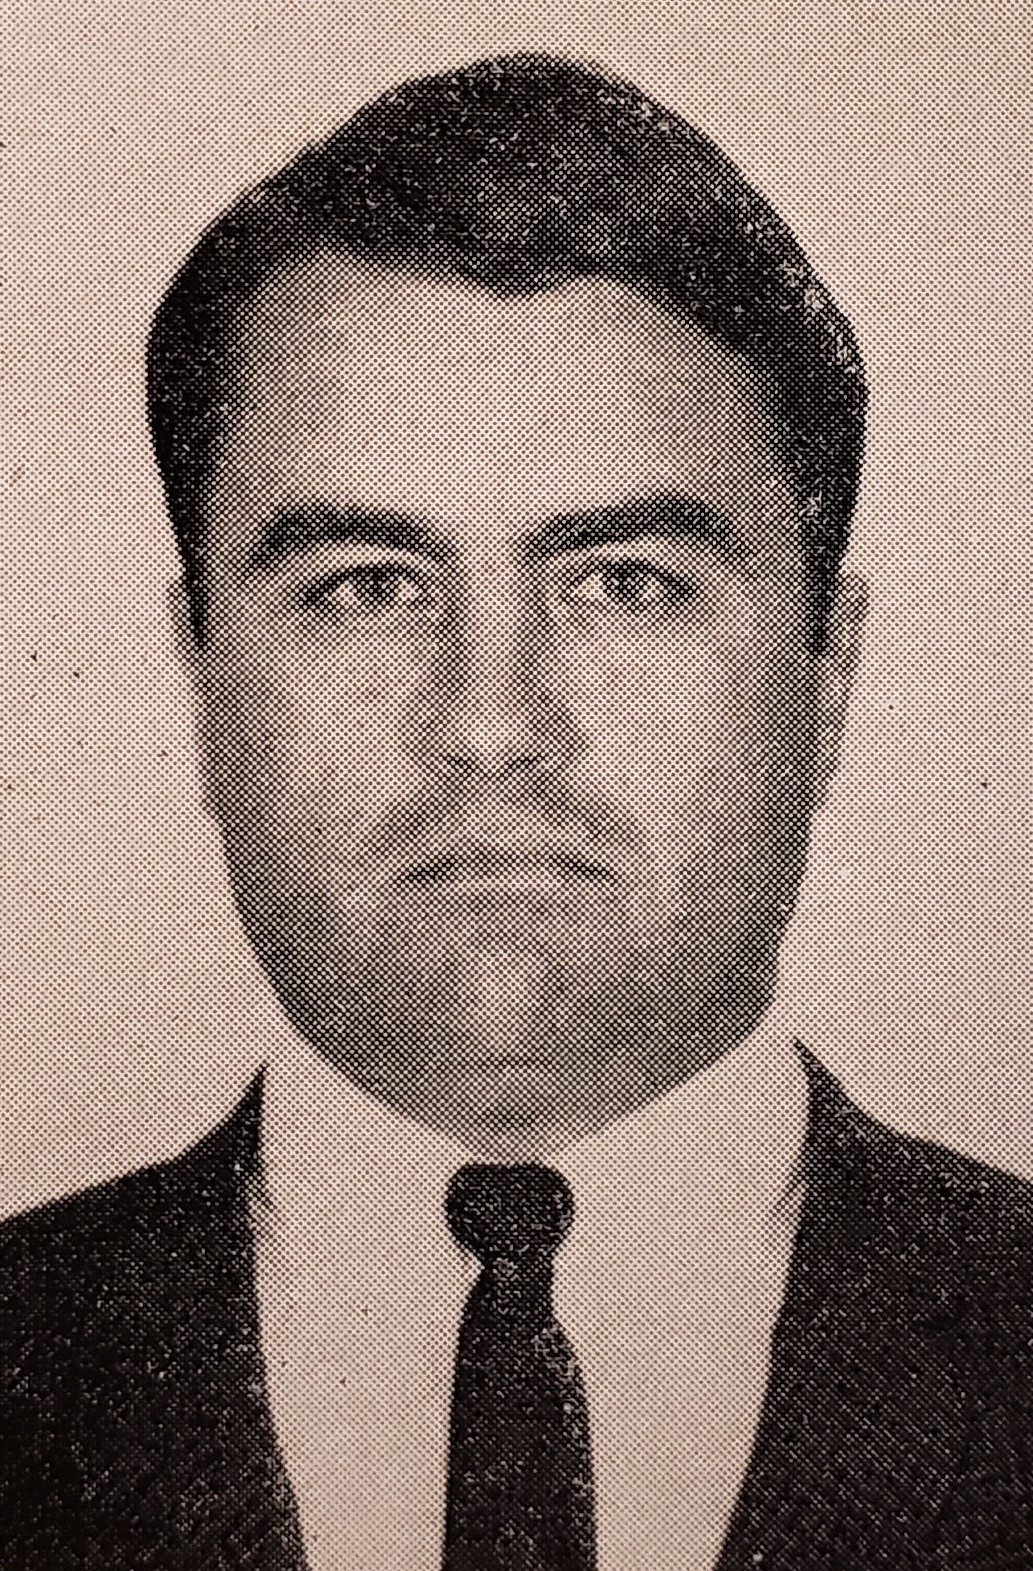 Reserve Sergeant Charles D. Rea | Los Angeles County Sheriff's Department, California